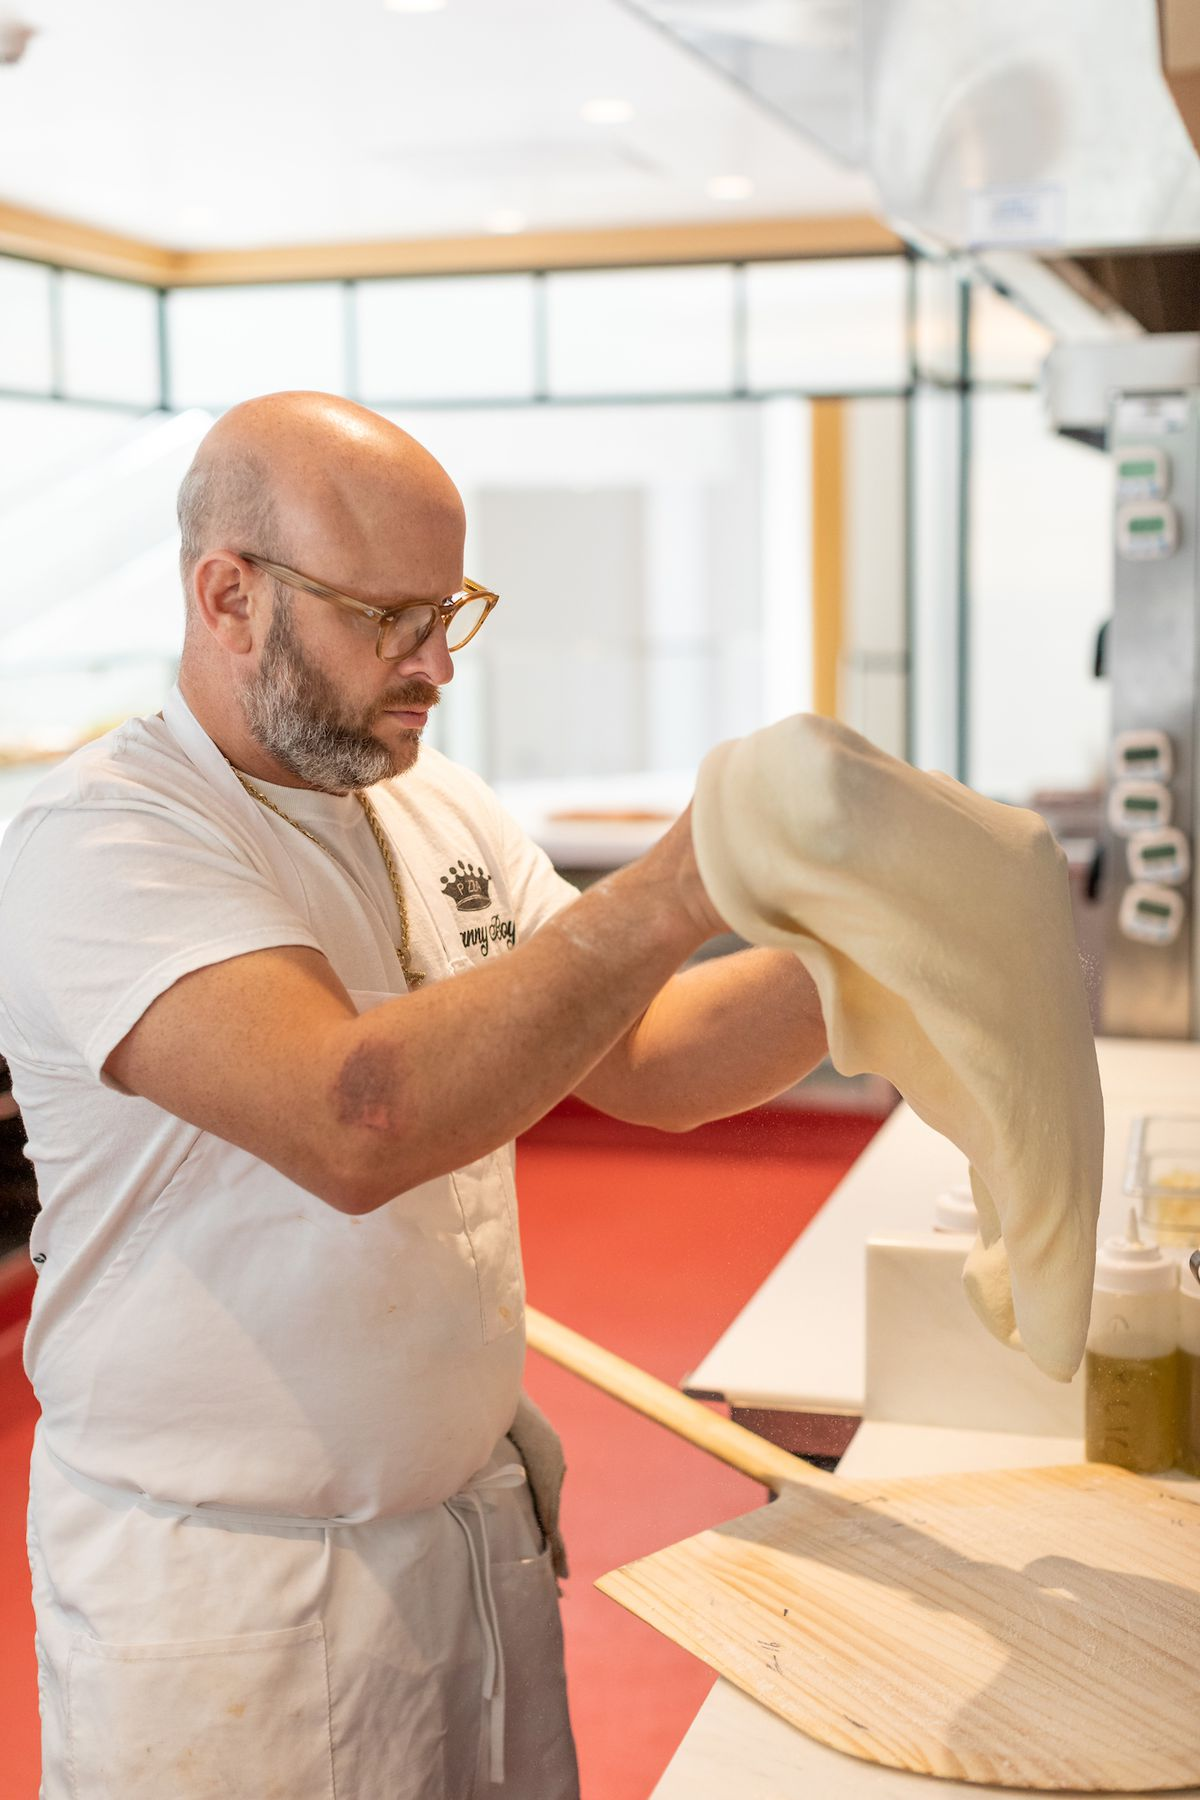 A chef stretches dough for pizza onto a wood peel.